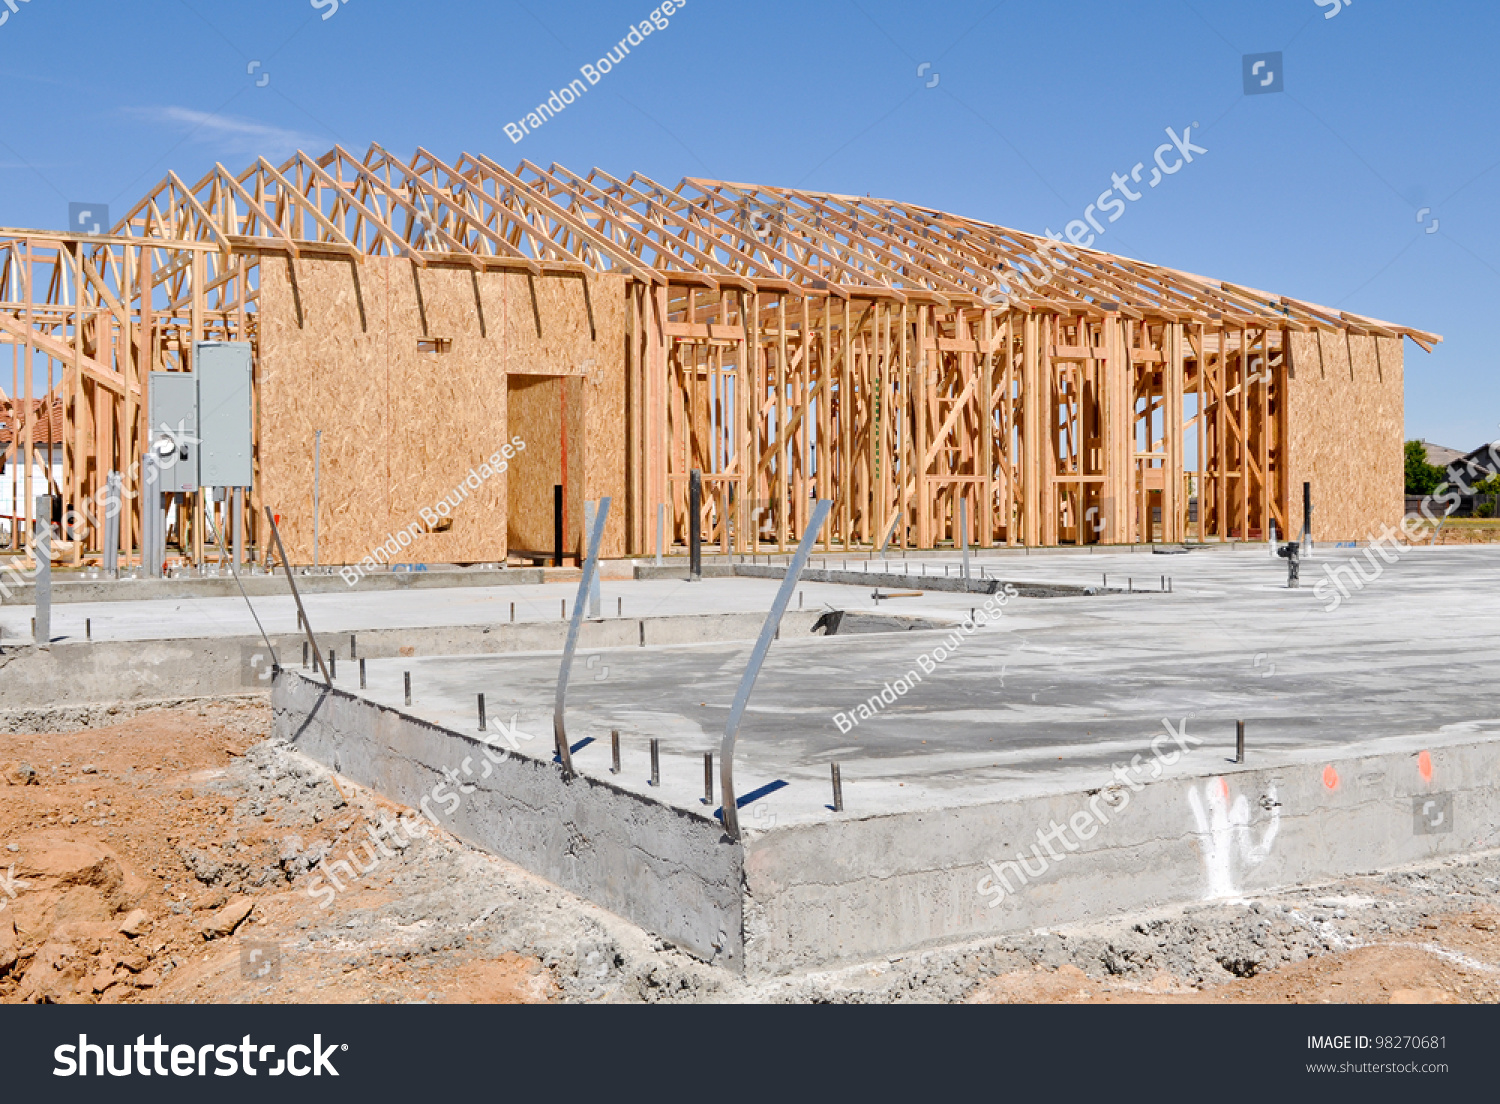 New home foundation stock photo 98270681 shutterstock for New home foundation